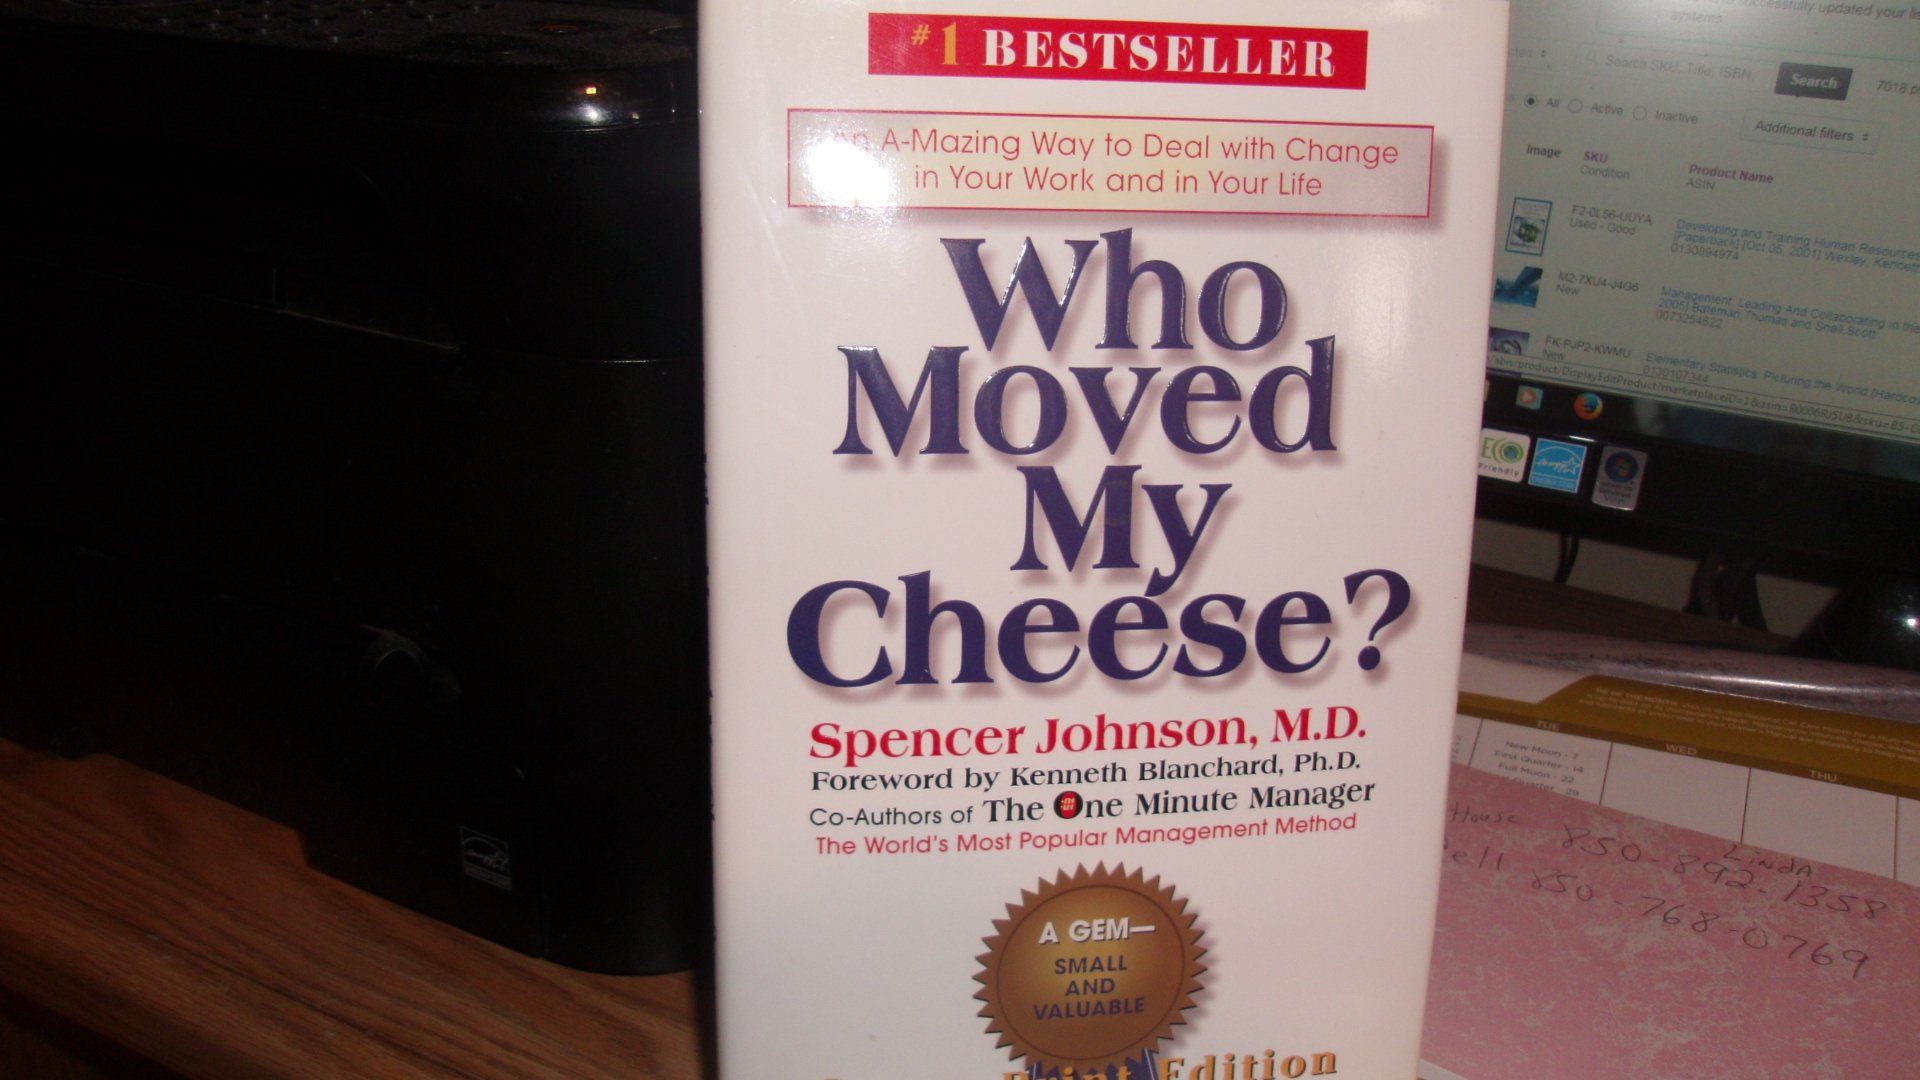 Who moved my cheese?: An amazing way to deal with change in your work and in your life pdf